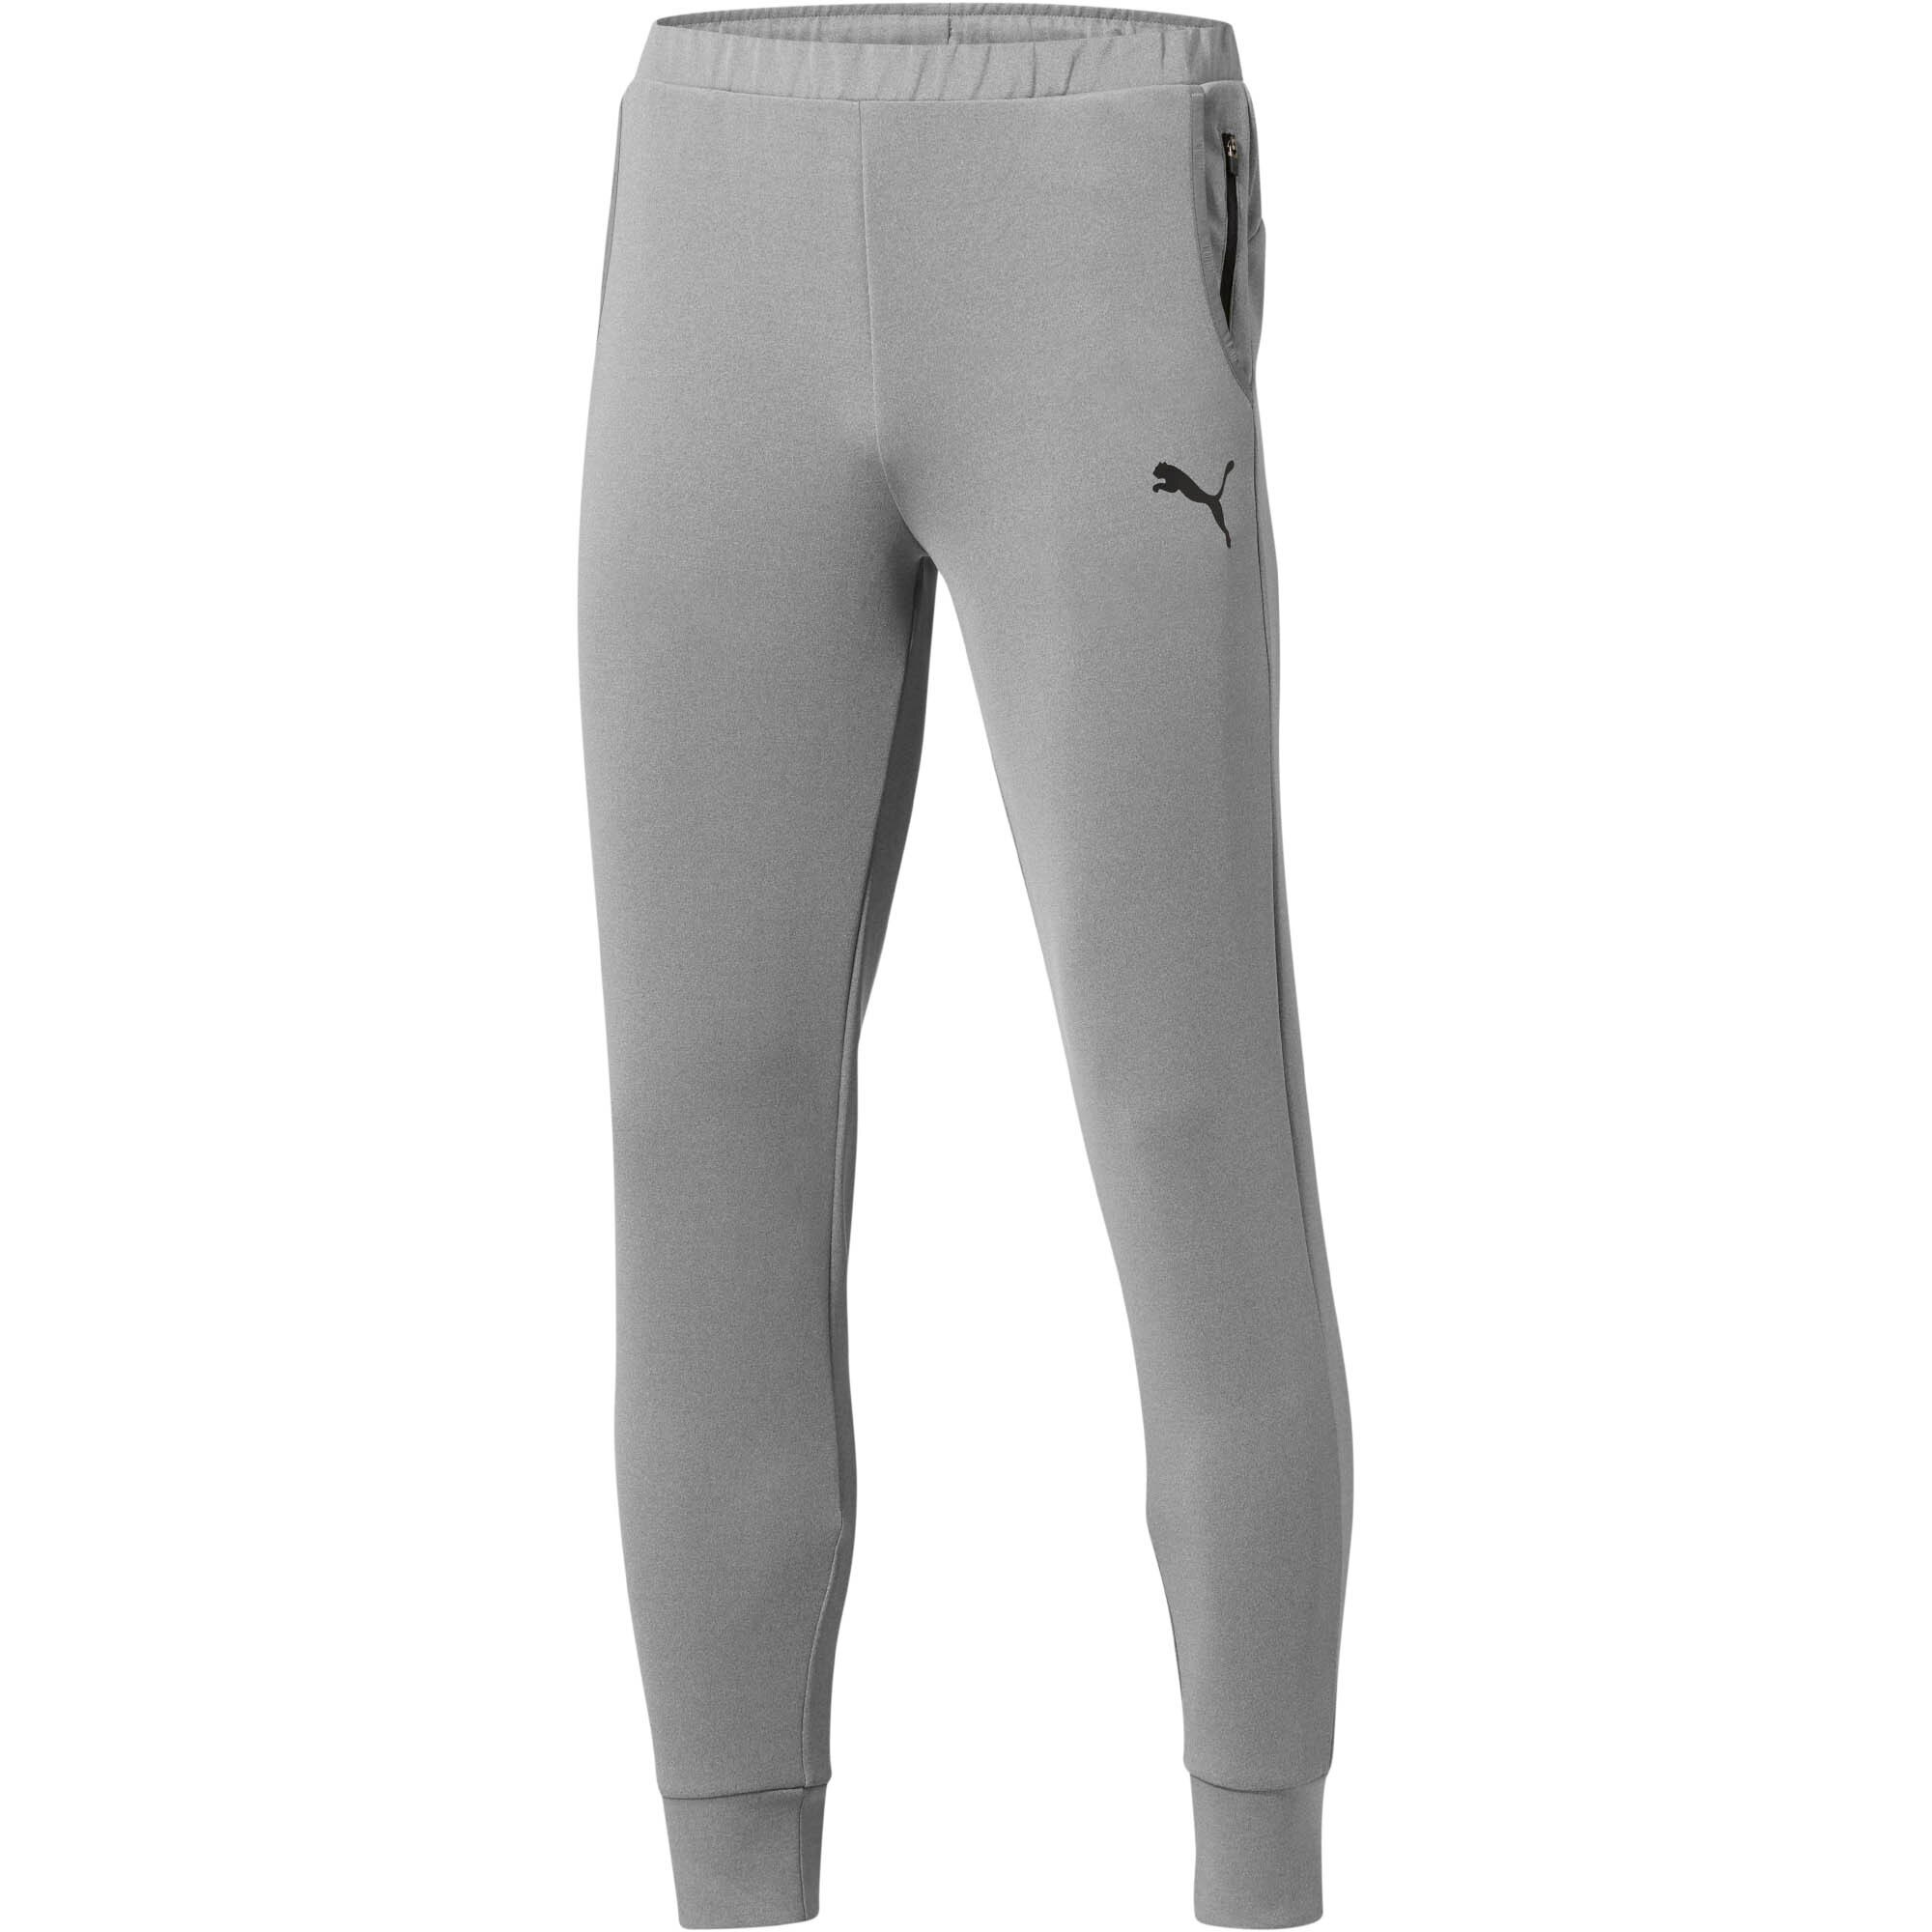 9d0988543c28 Official Puma Store  PUMA Tec Sports Pants